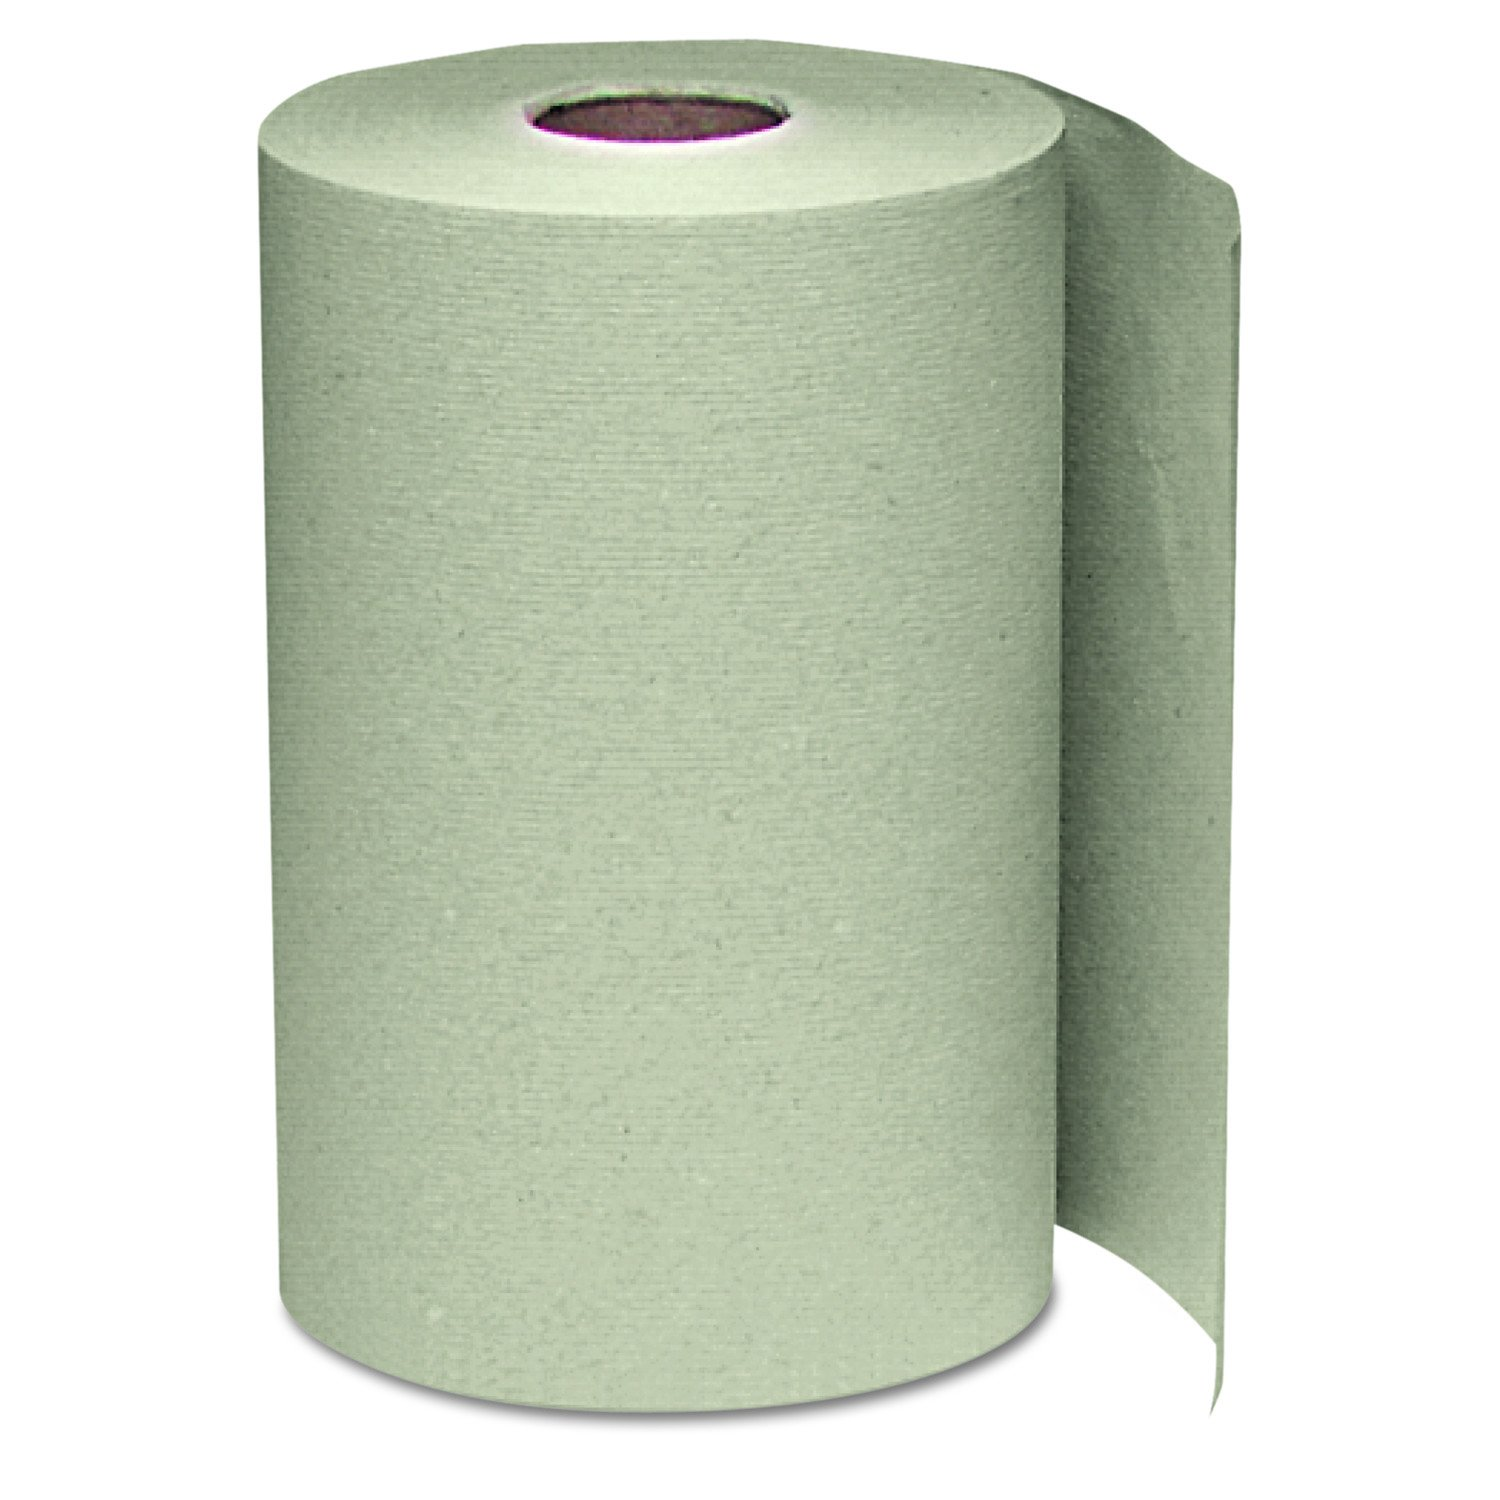 Windsoft 108 Nonperforated Paper Towel Roll, 8 x 350ft, Brown (Case of 12 Rolls)